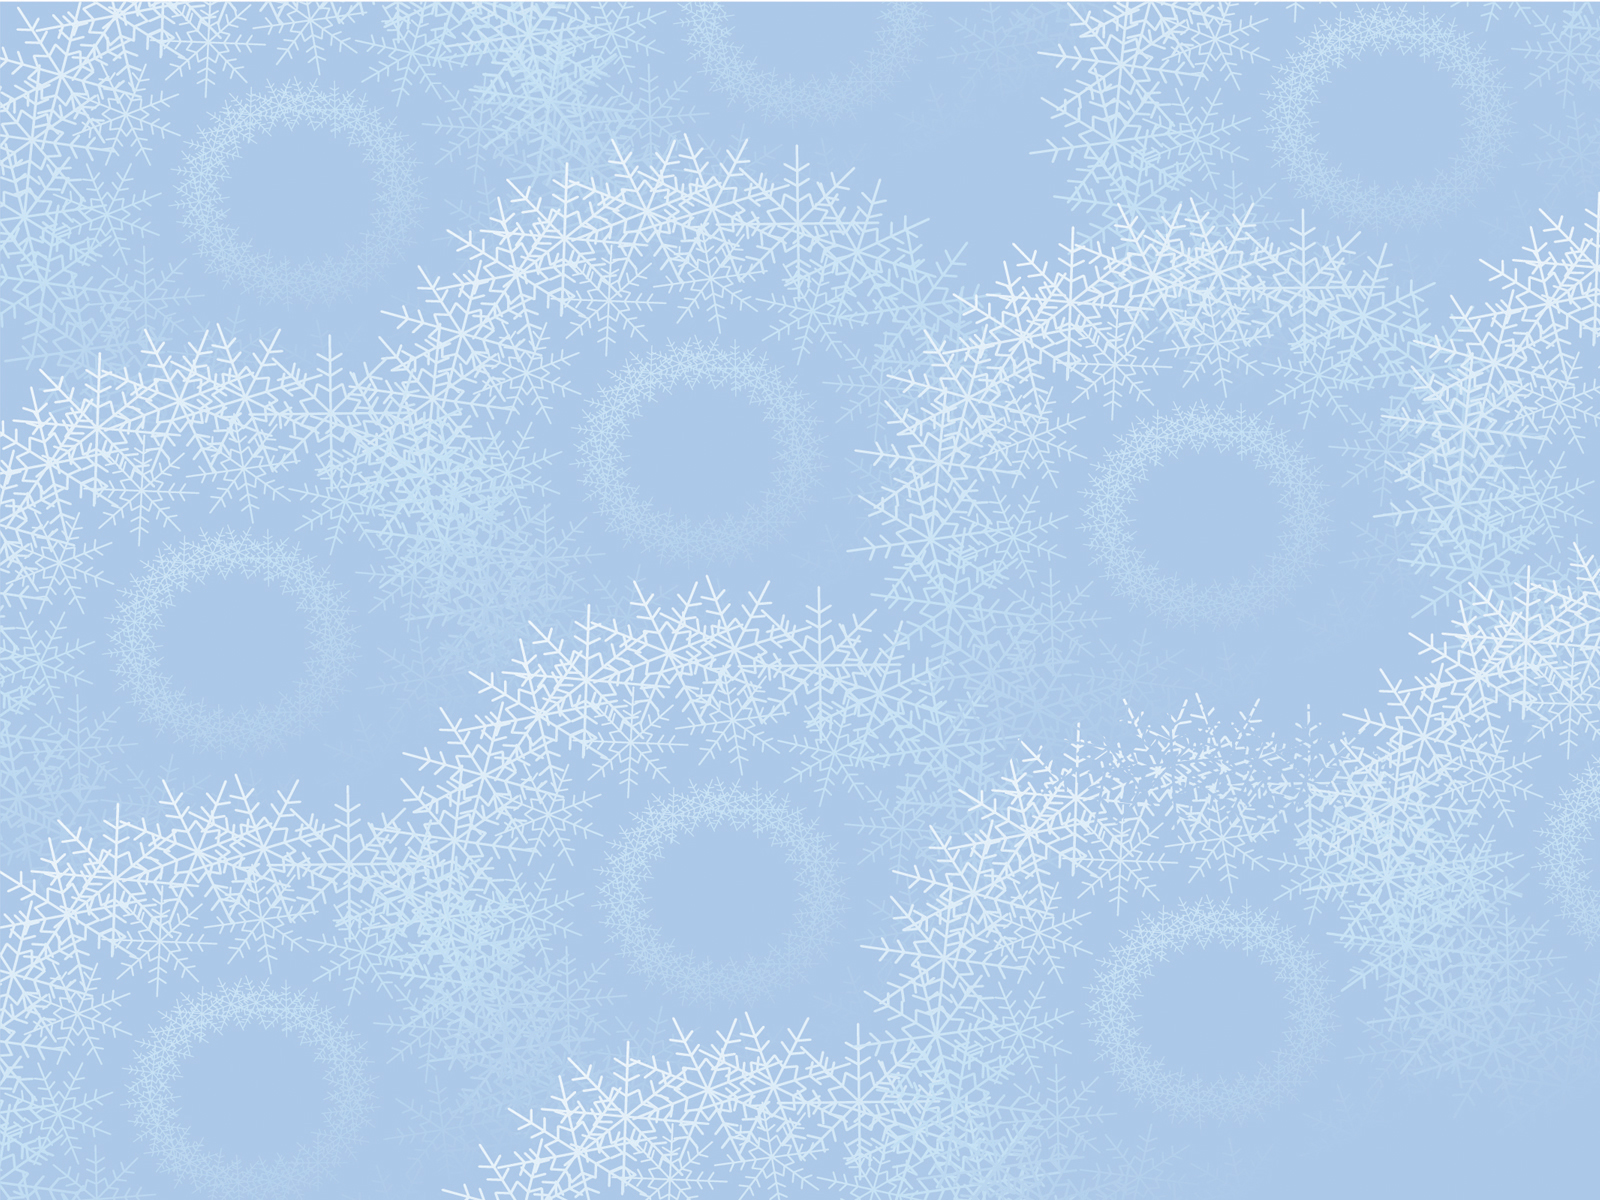 snowflakes on light blue backgrounds blue christmas